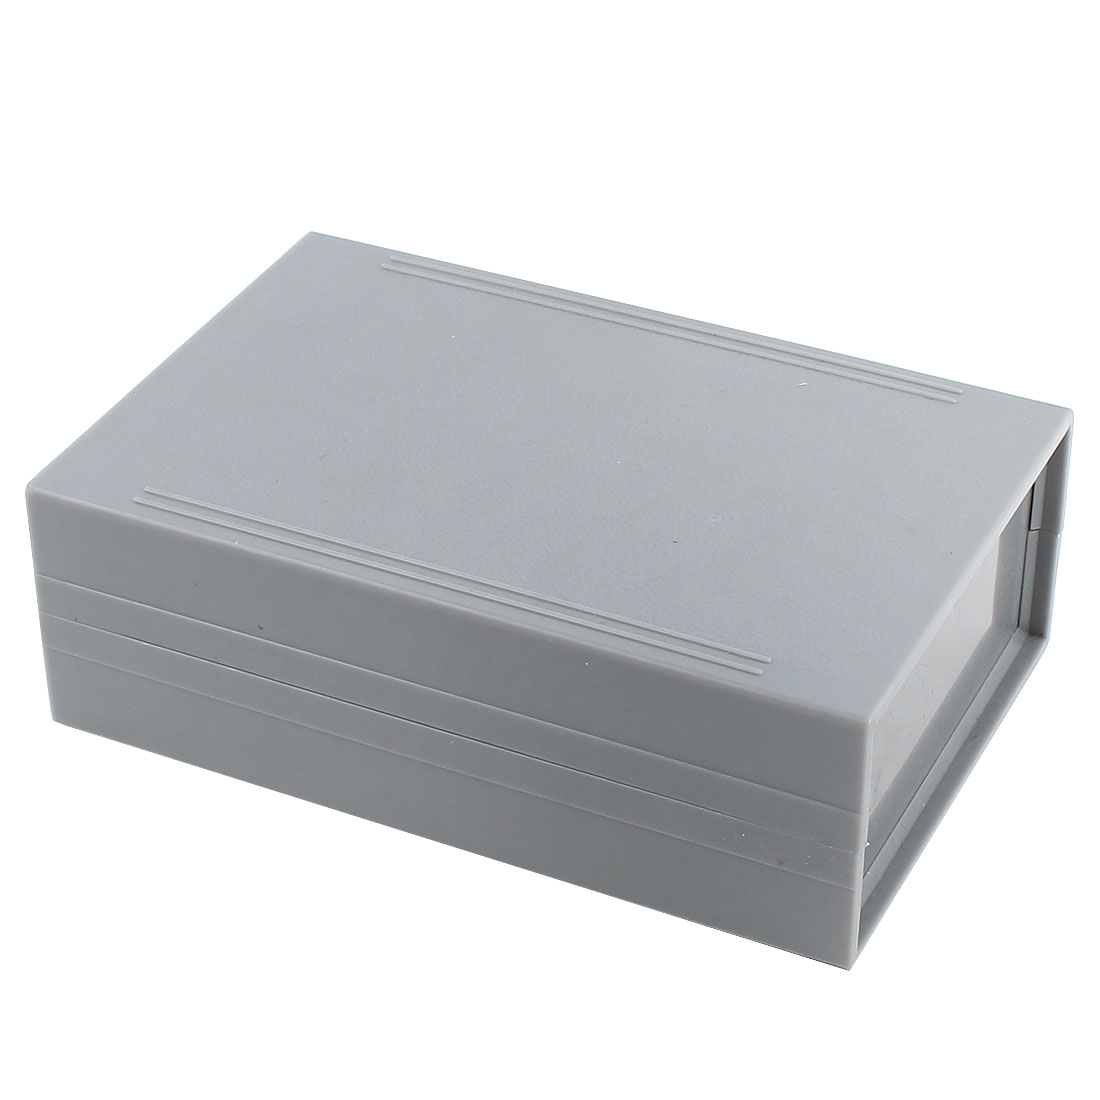 150mm x 97mm x 50mm Plastic Enclosure Case DIY Junction Box